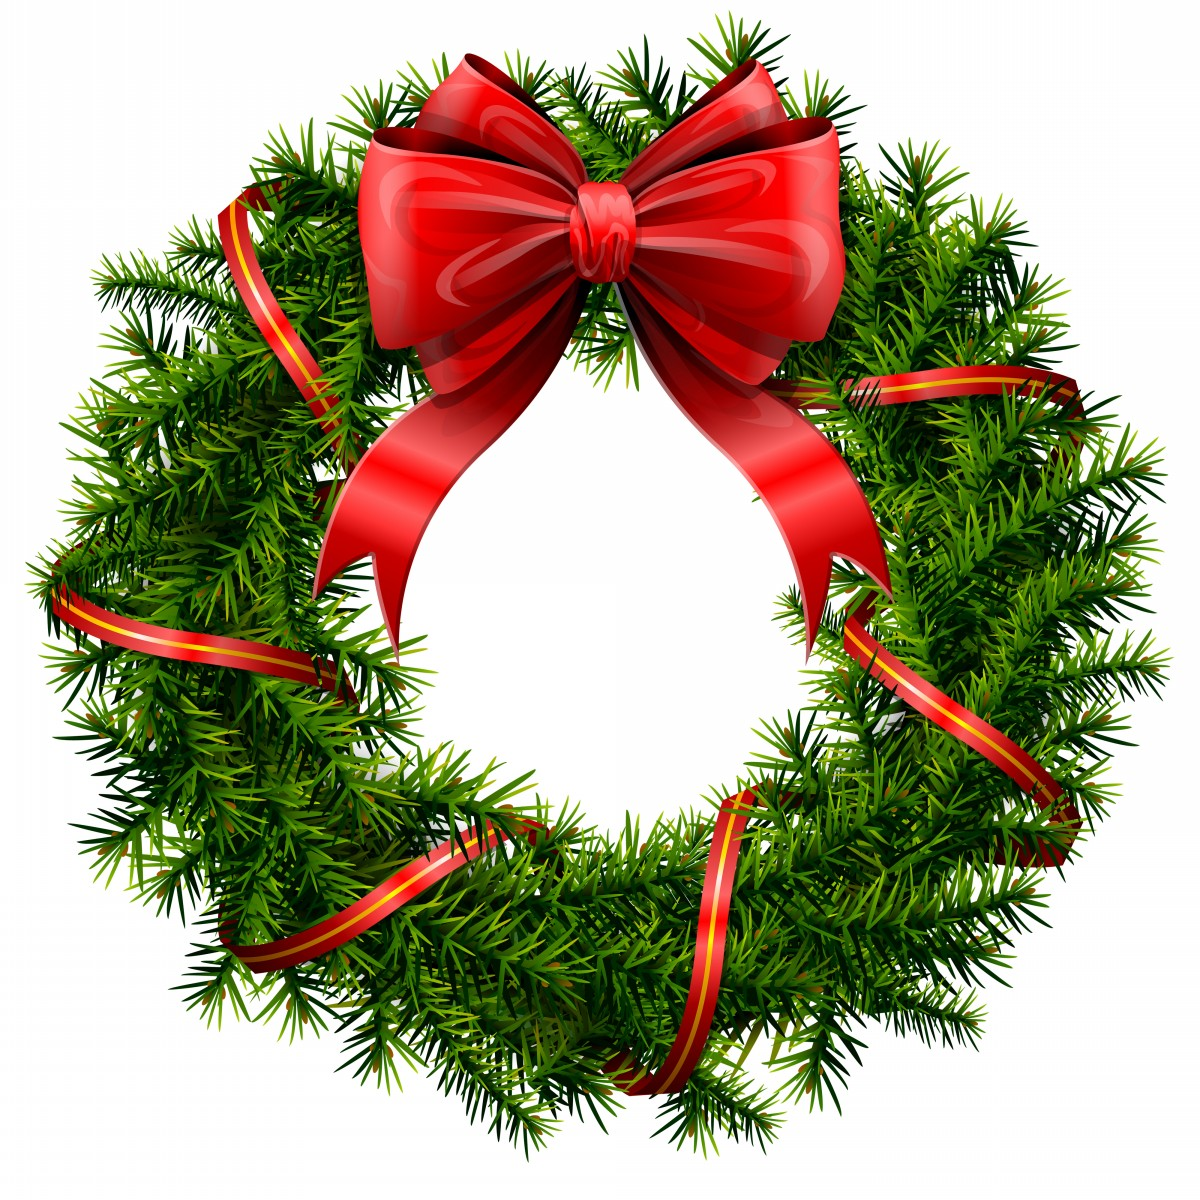 Holiday Wreath Image Free Download Best Holiday Wreath Image On